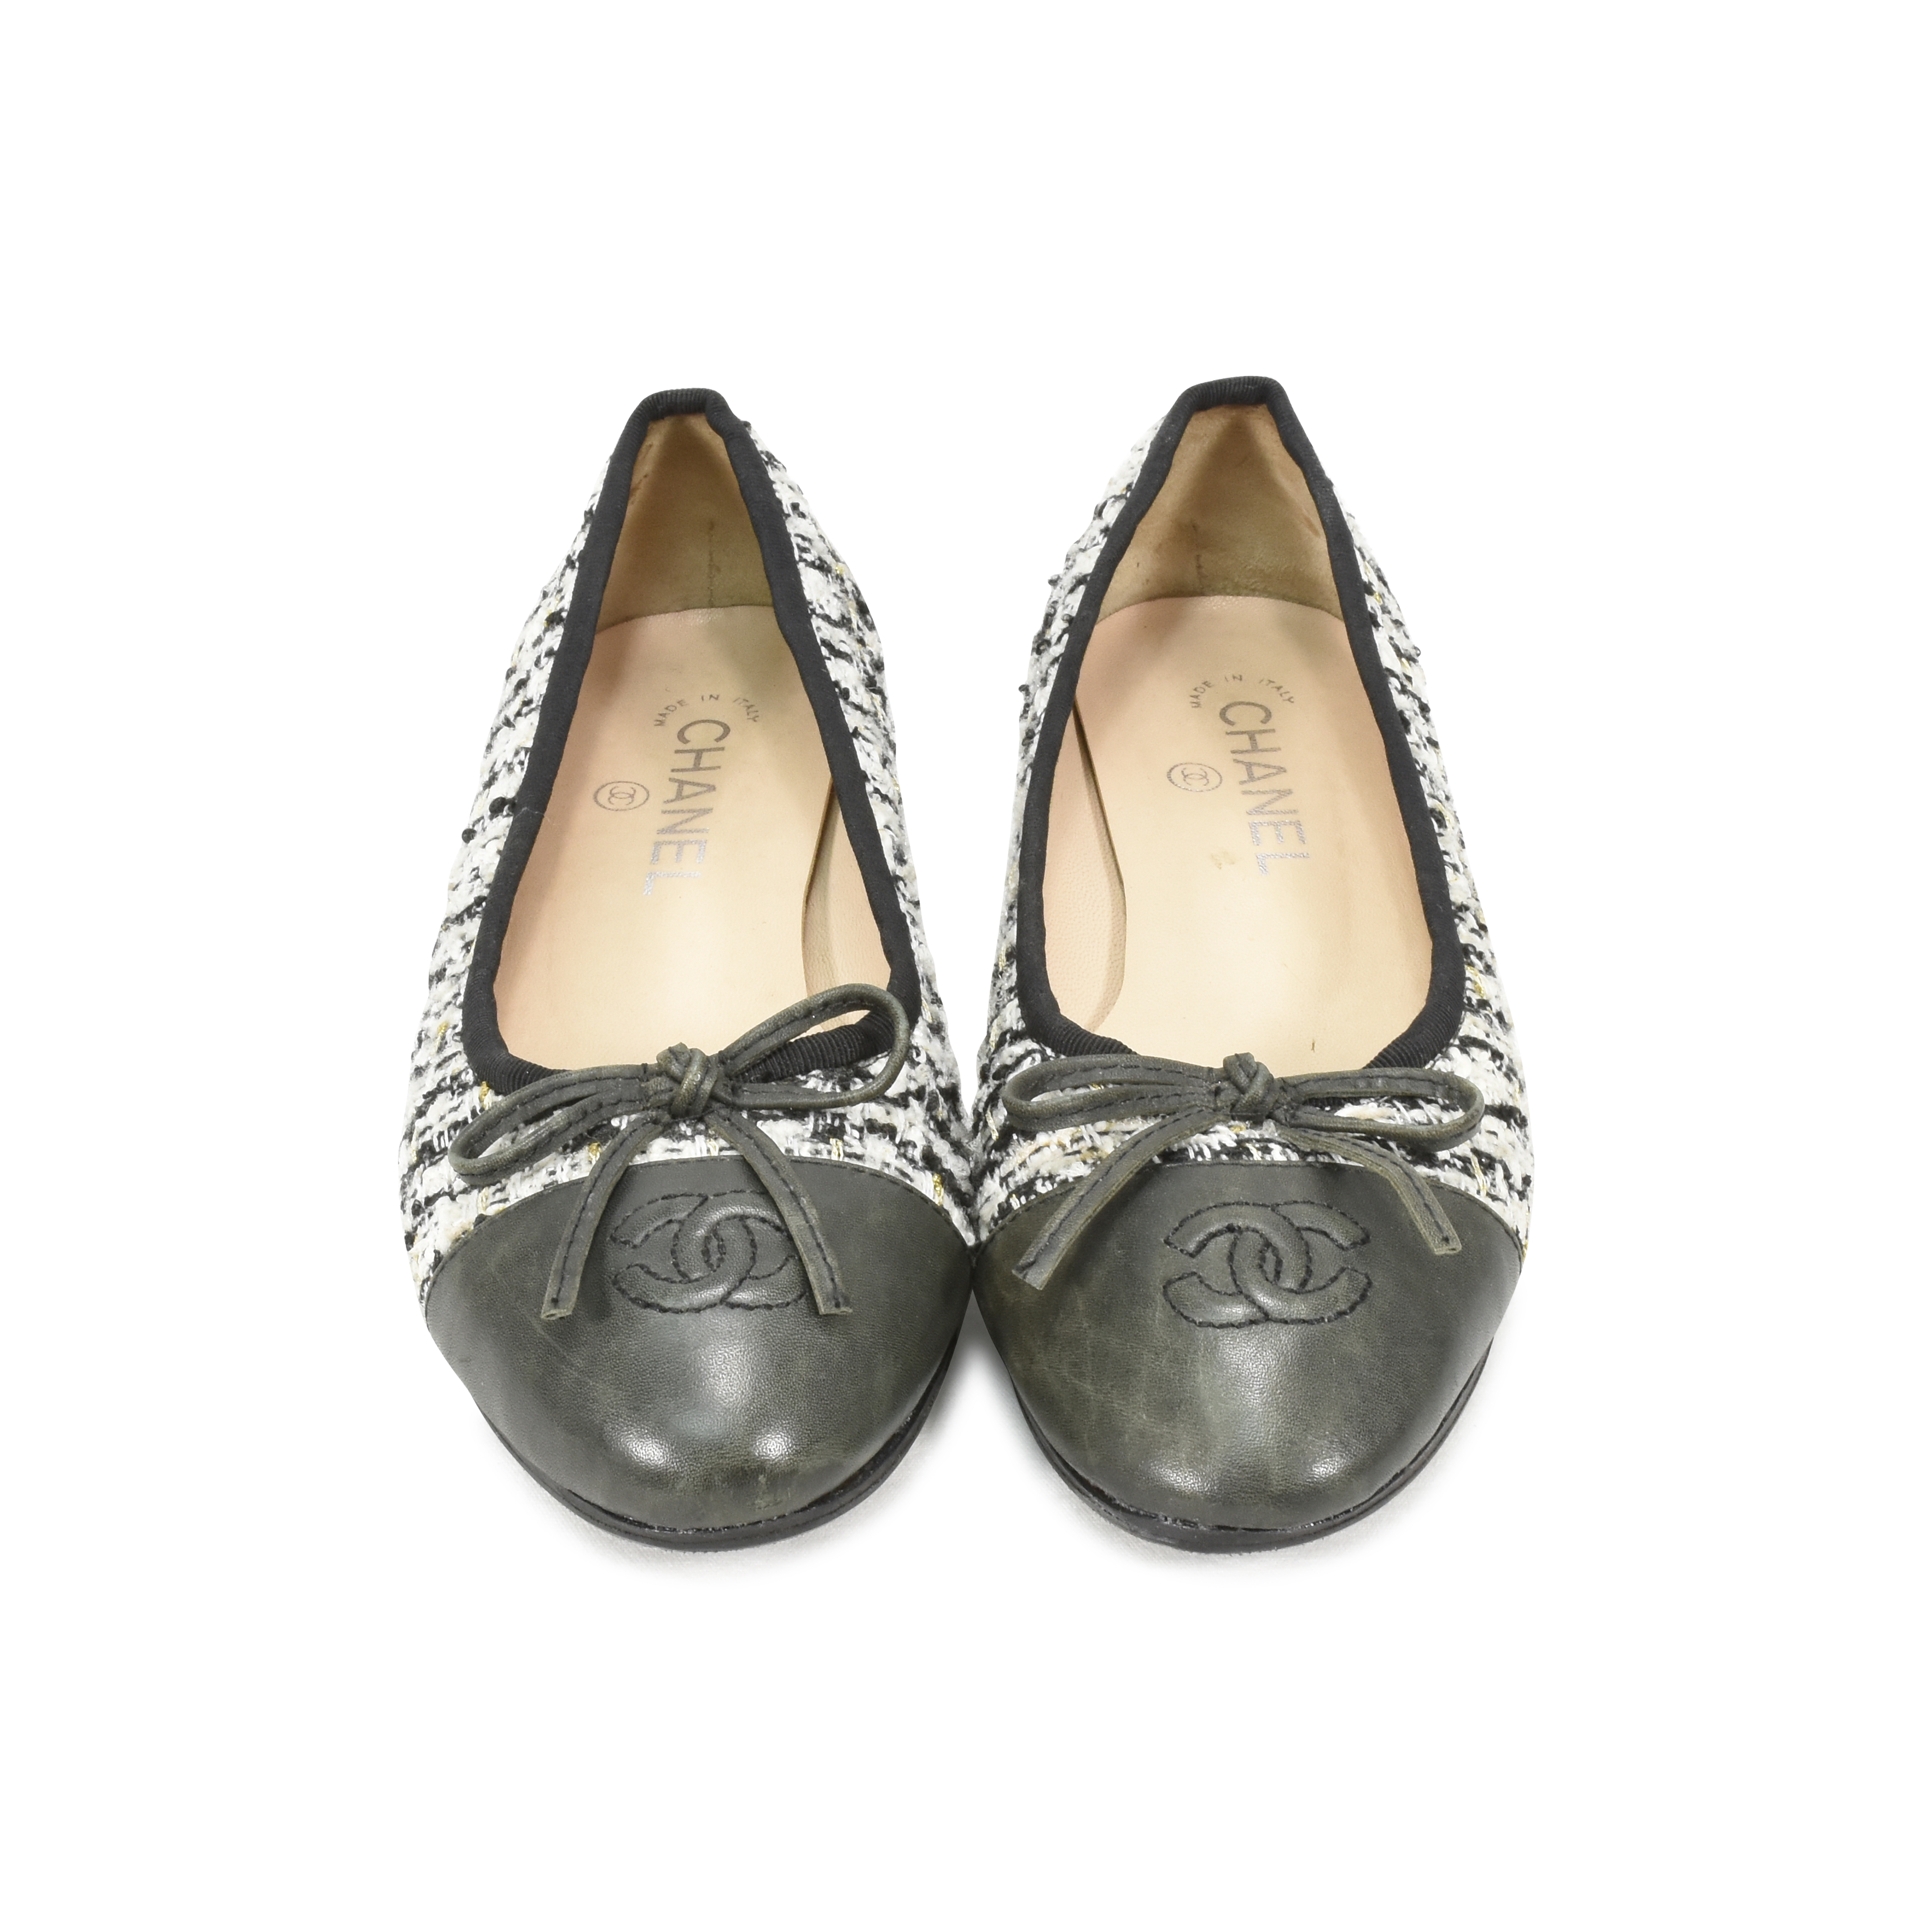 a4e1fa1bb970e Authentic Second Hand Chanel Tweed Ballerina Flats (PSS-370-00005 ...